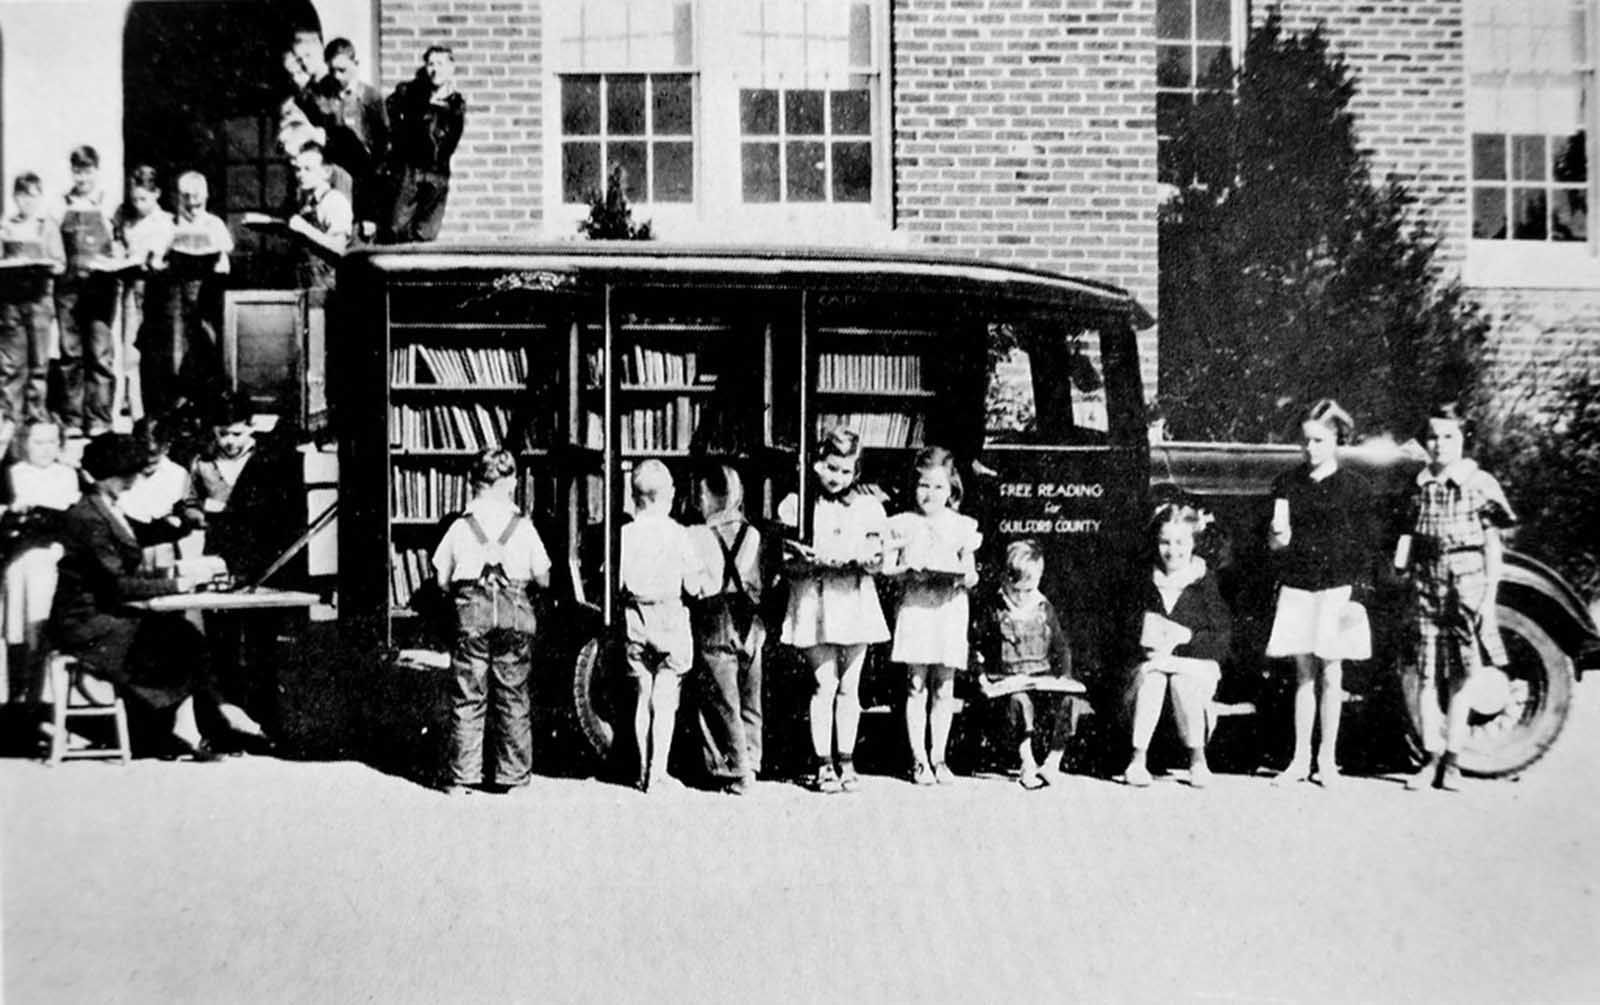 Bookmobile in Greensboro, North Carolina, USA. 170.770 volumes were circulated in 1936.